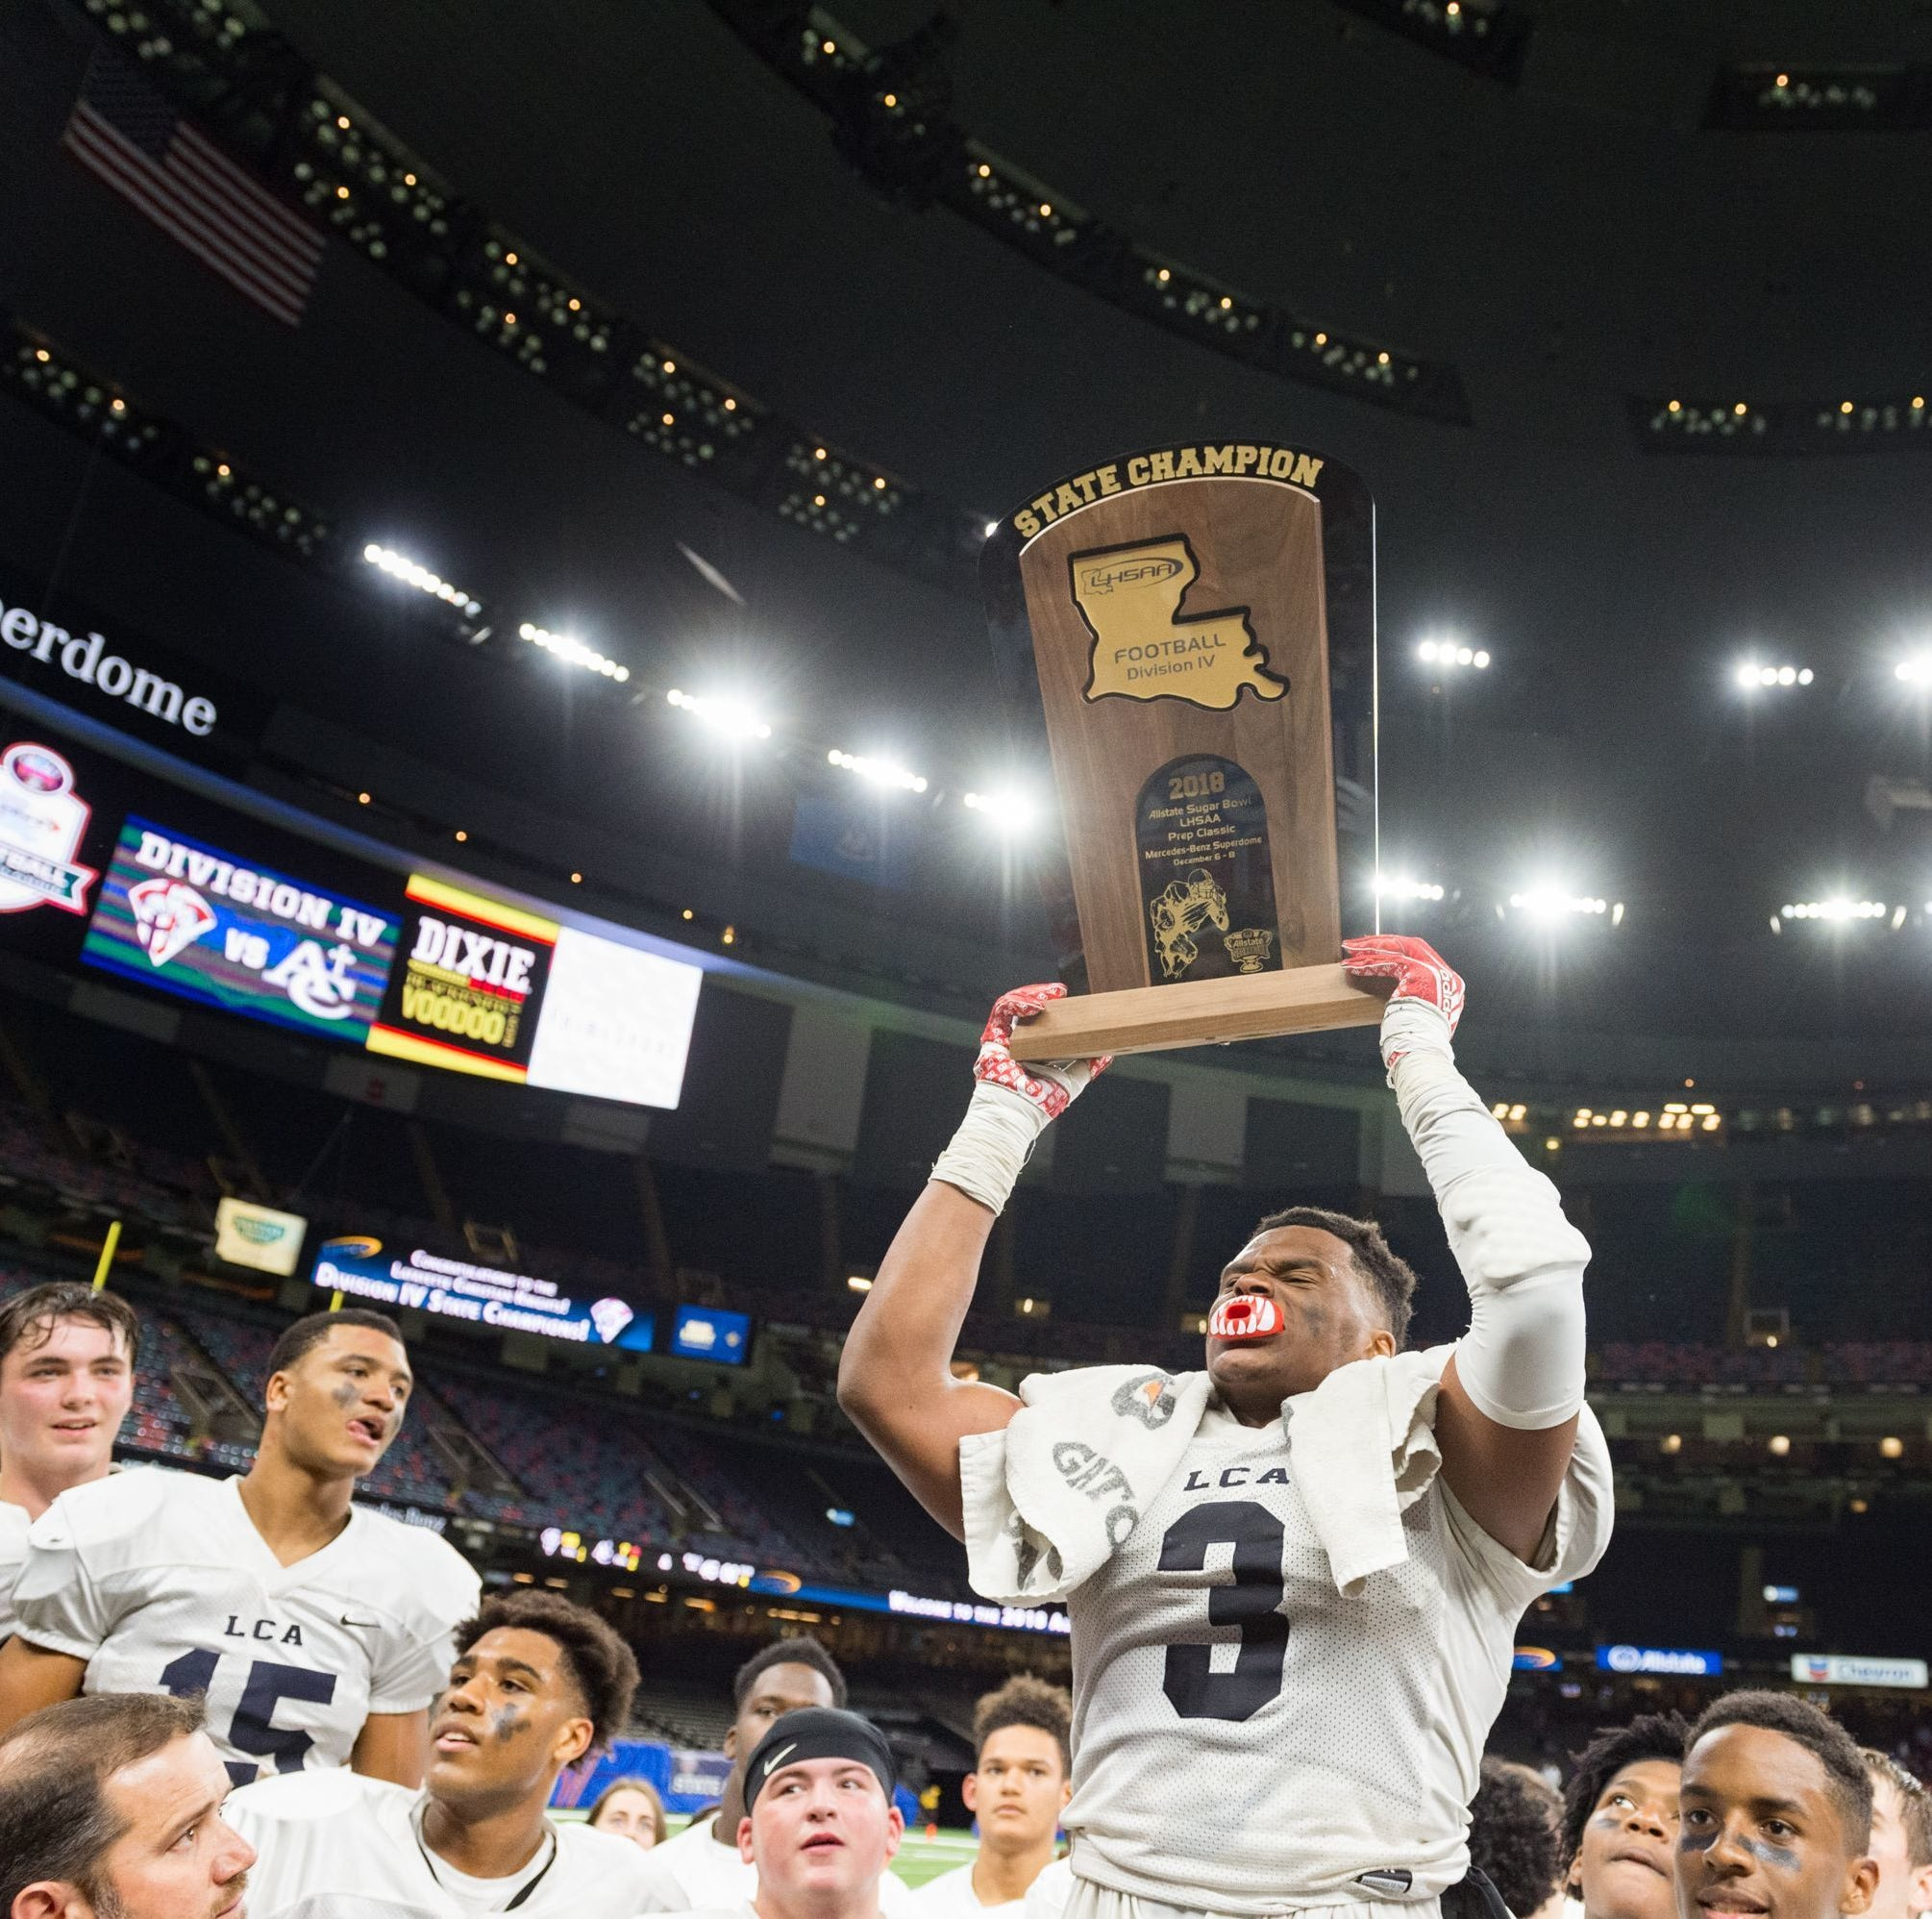 Does separate championship sites create more 'unintended consequences' for the LHSAA?